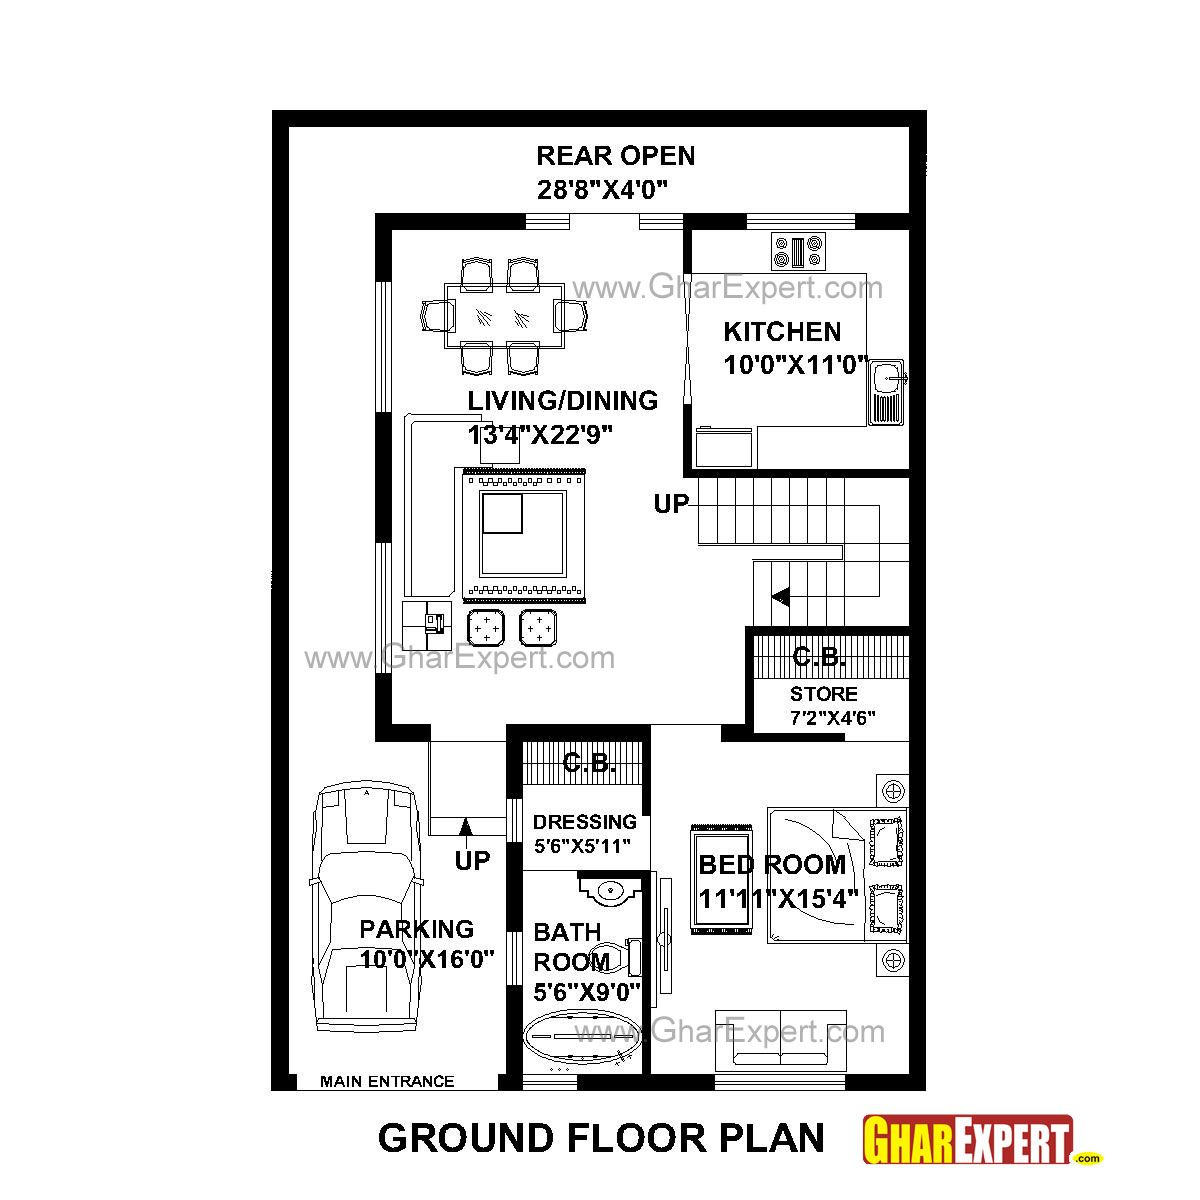 House Plan For 33 Feet By 40 Feet Plot Plot Size 147: House Plan For 30 Feet By 45 Plot Size 150 Square Yards